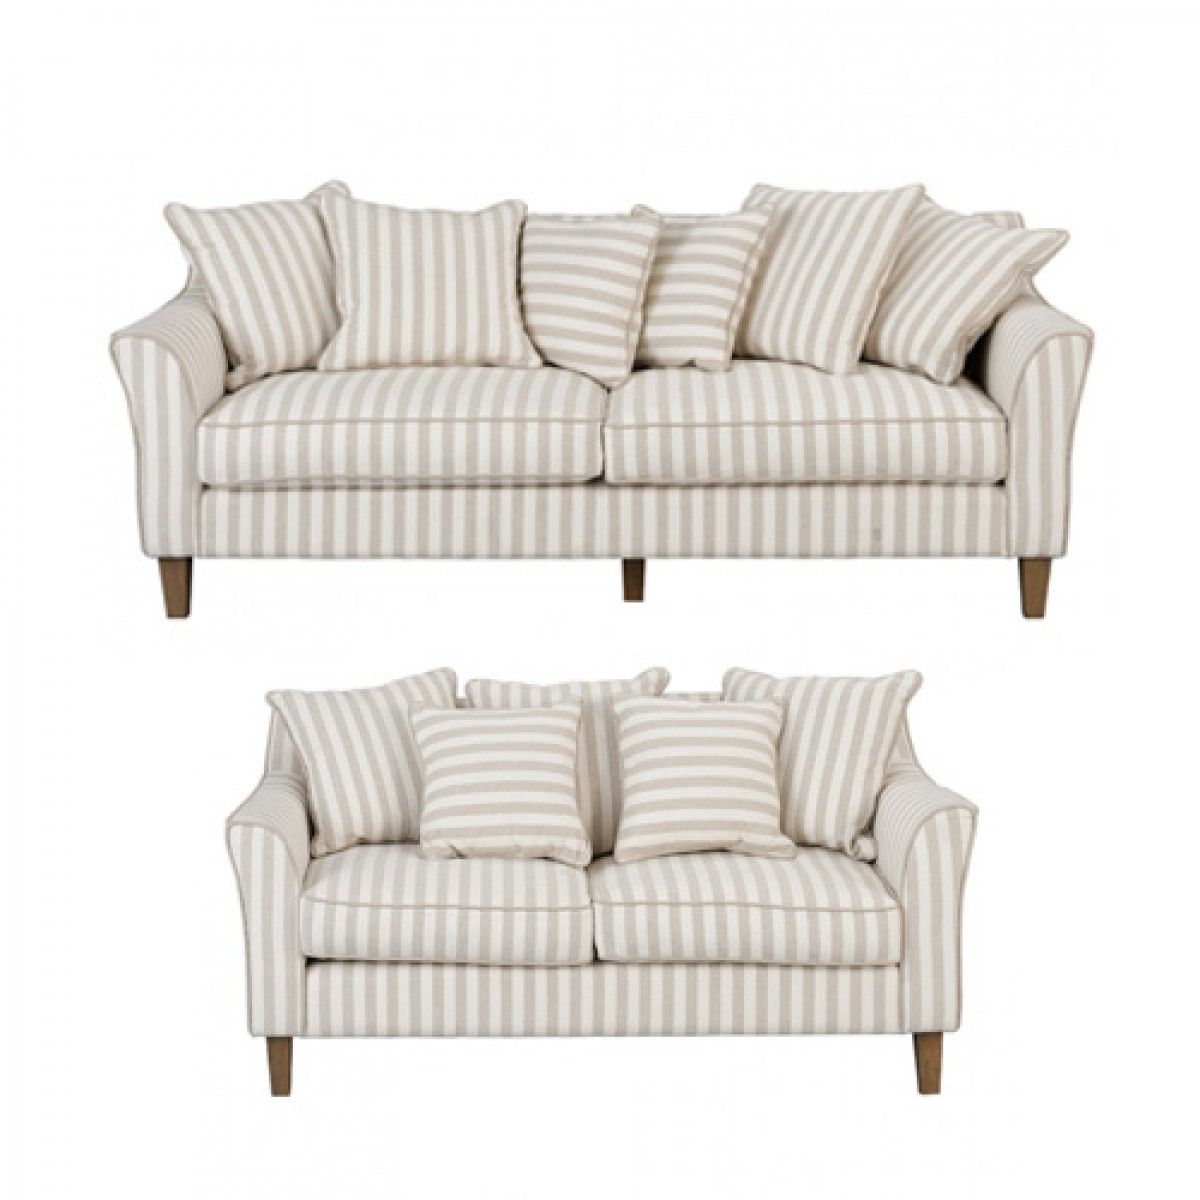 Florian 3 2 Seater Sofa Package